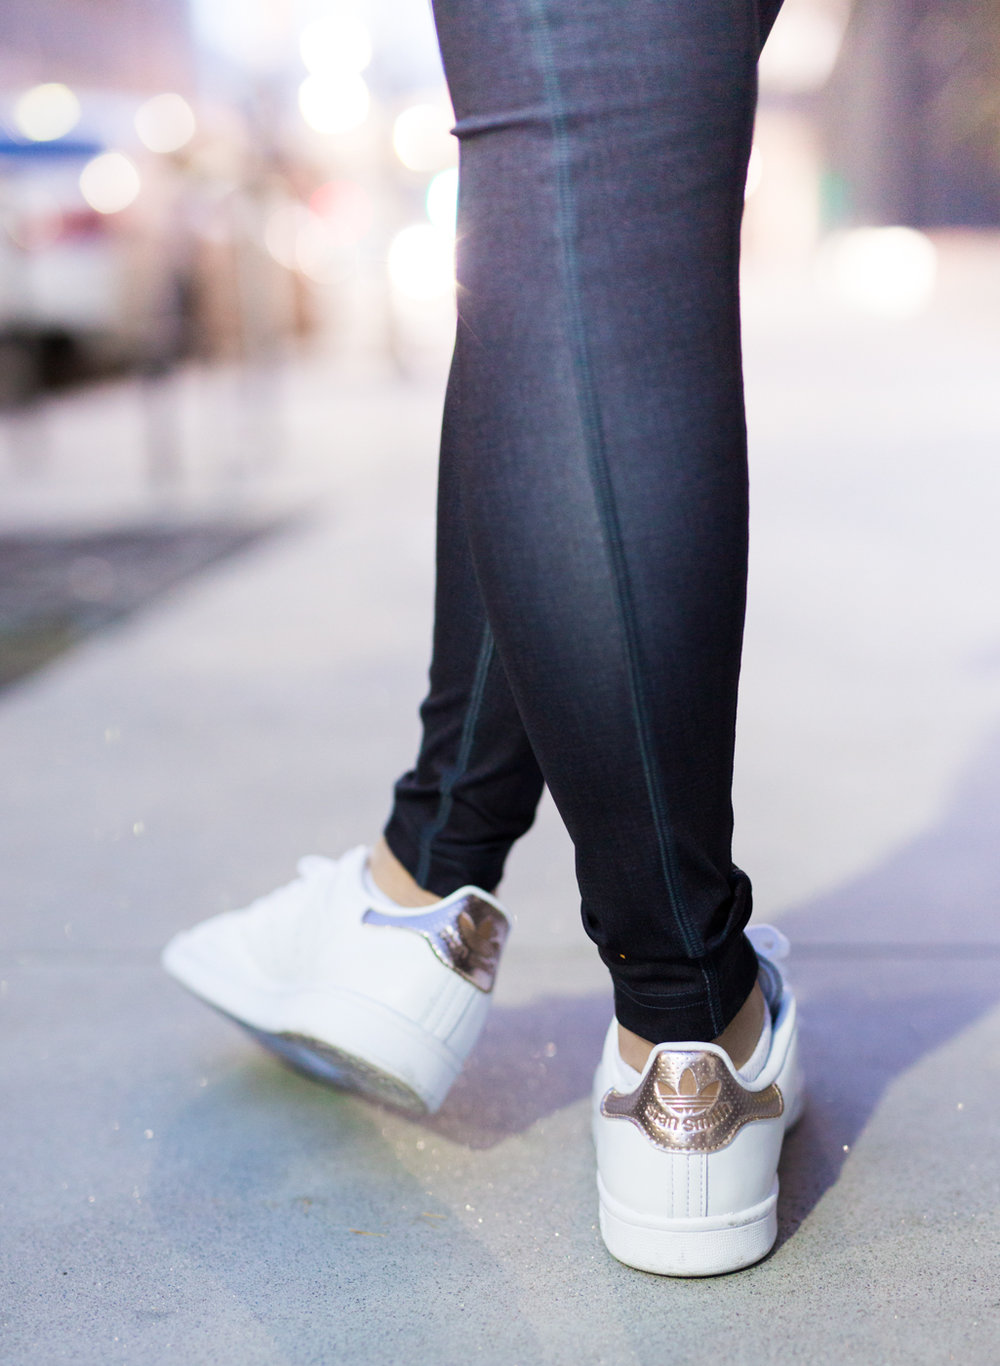 Adidas Stan Smith Copper Metallic Sneakers | The Chic Diary